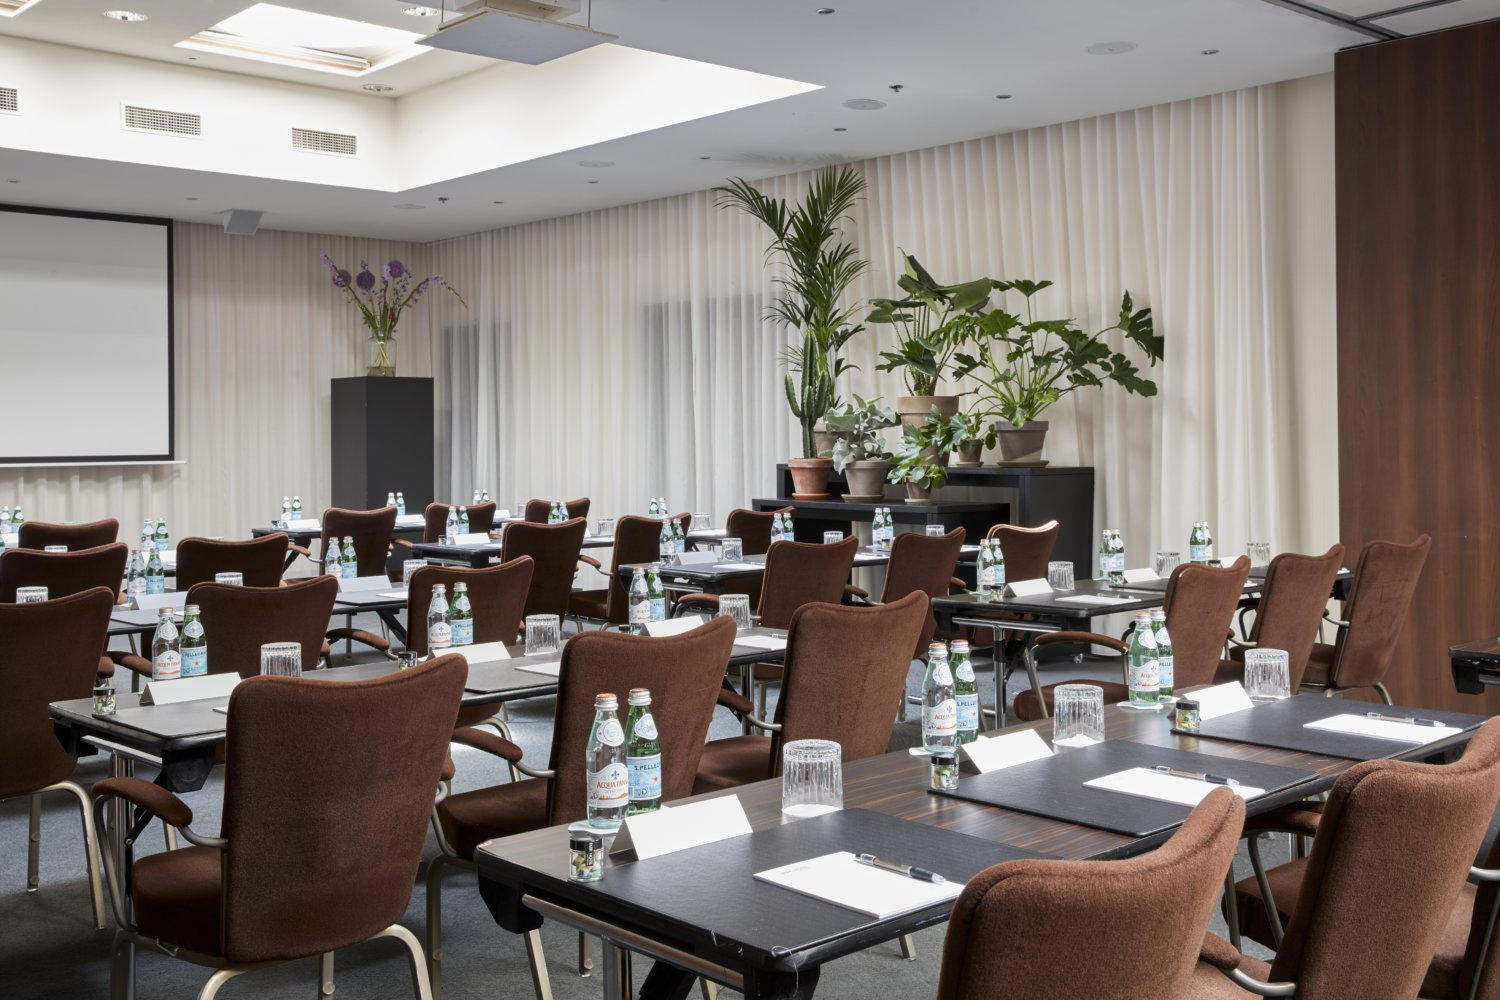 Park Hotel Amsterdam New York meeting room meeting and events